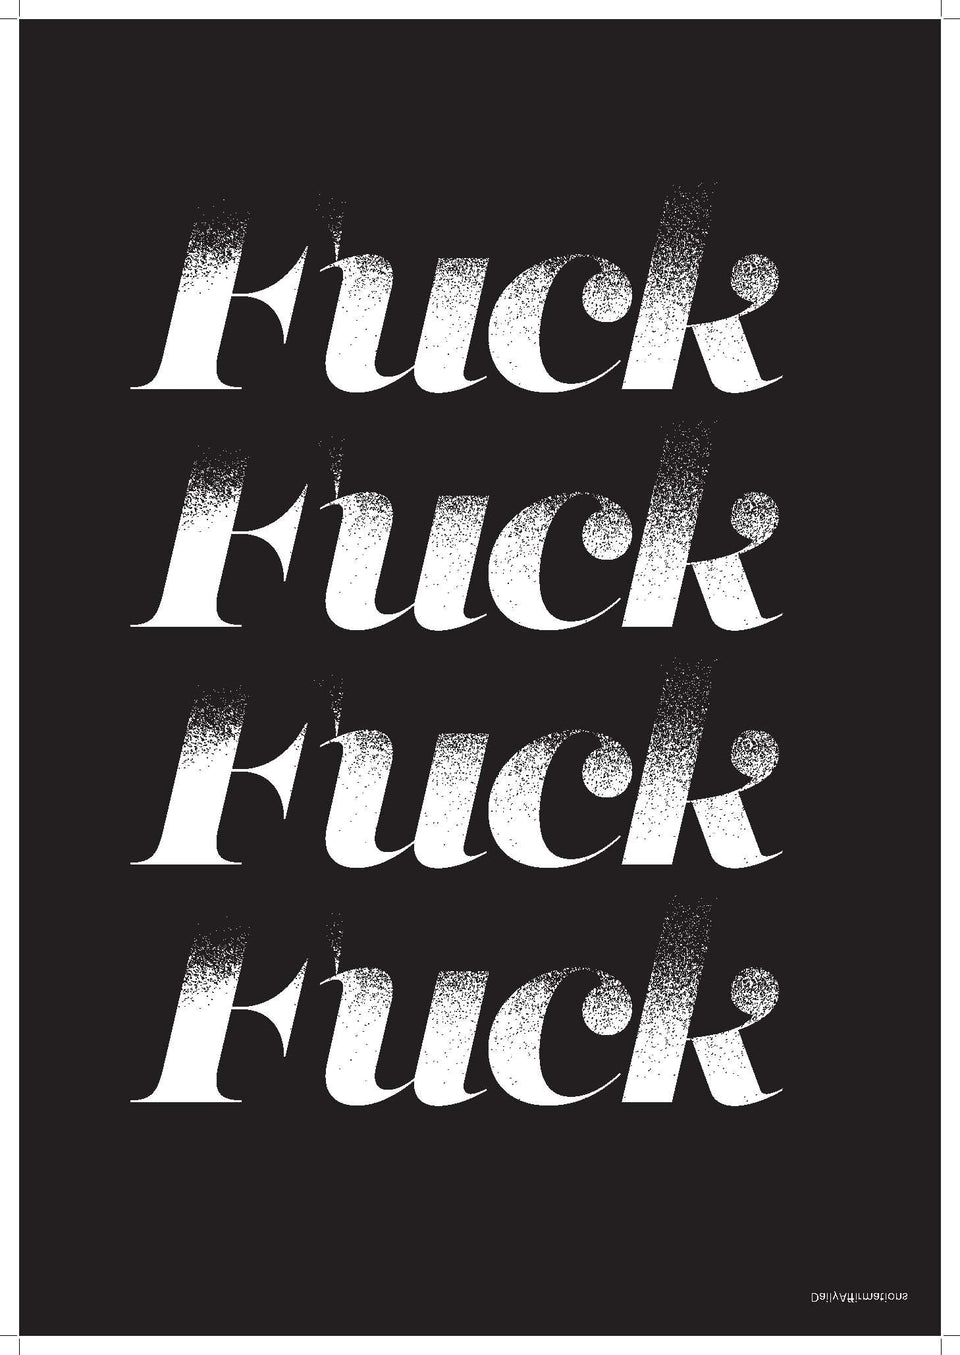 Daily Affirmations 1: Fuck Fuck Fuck Fuck